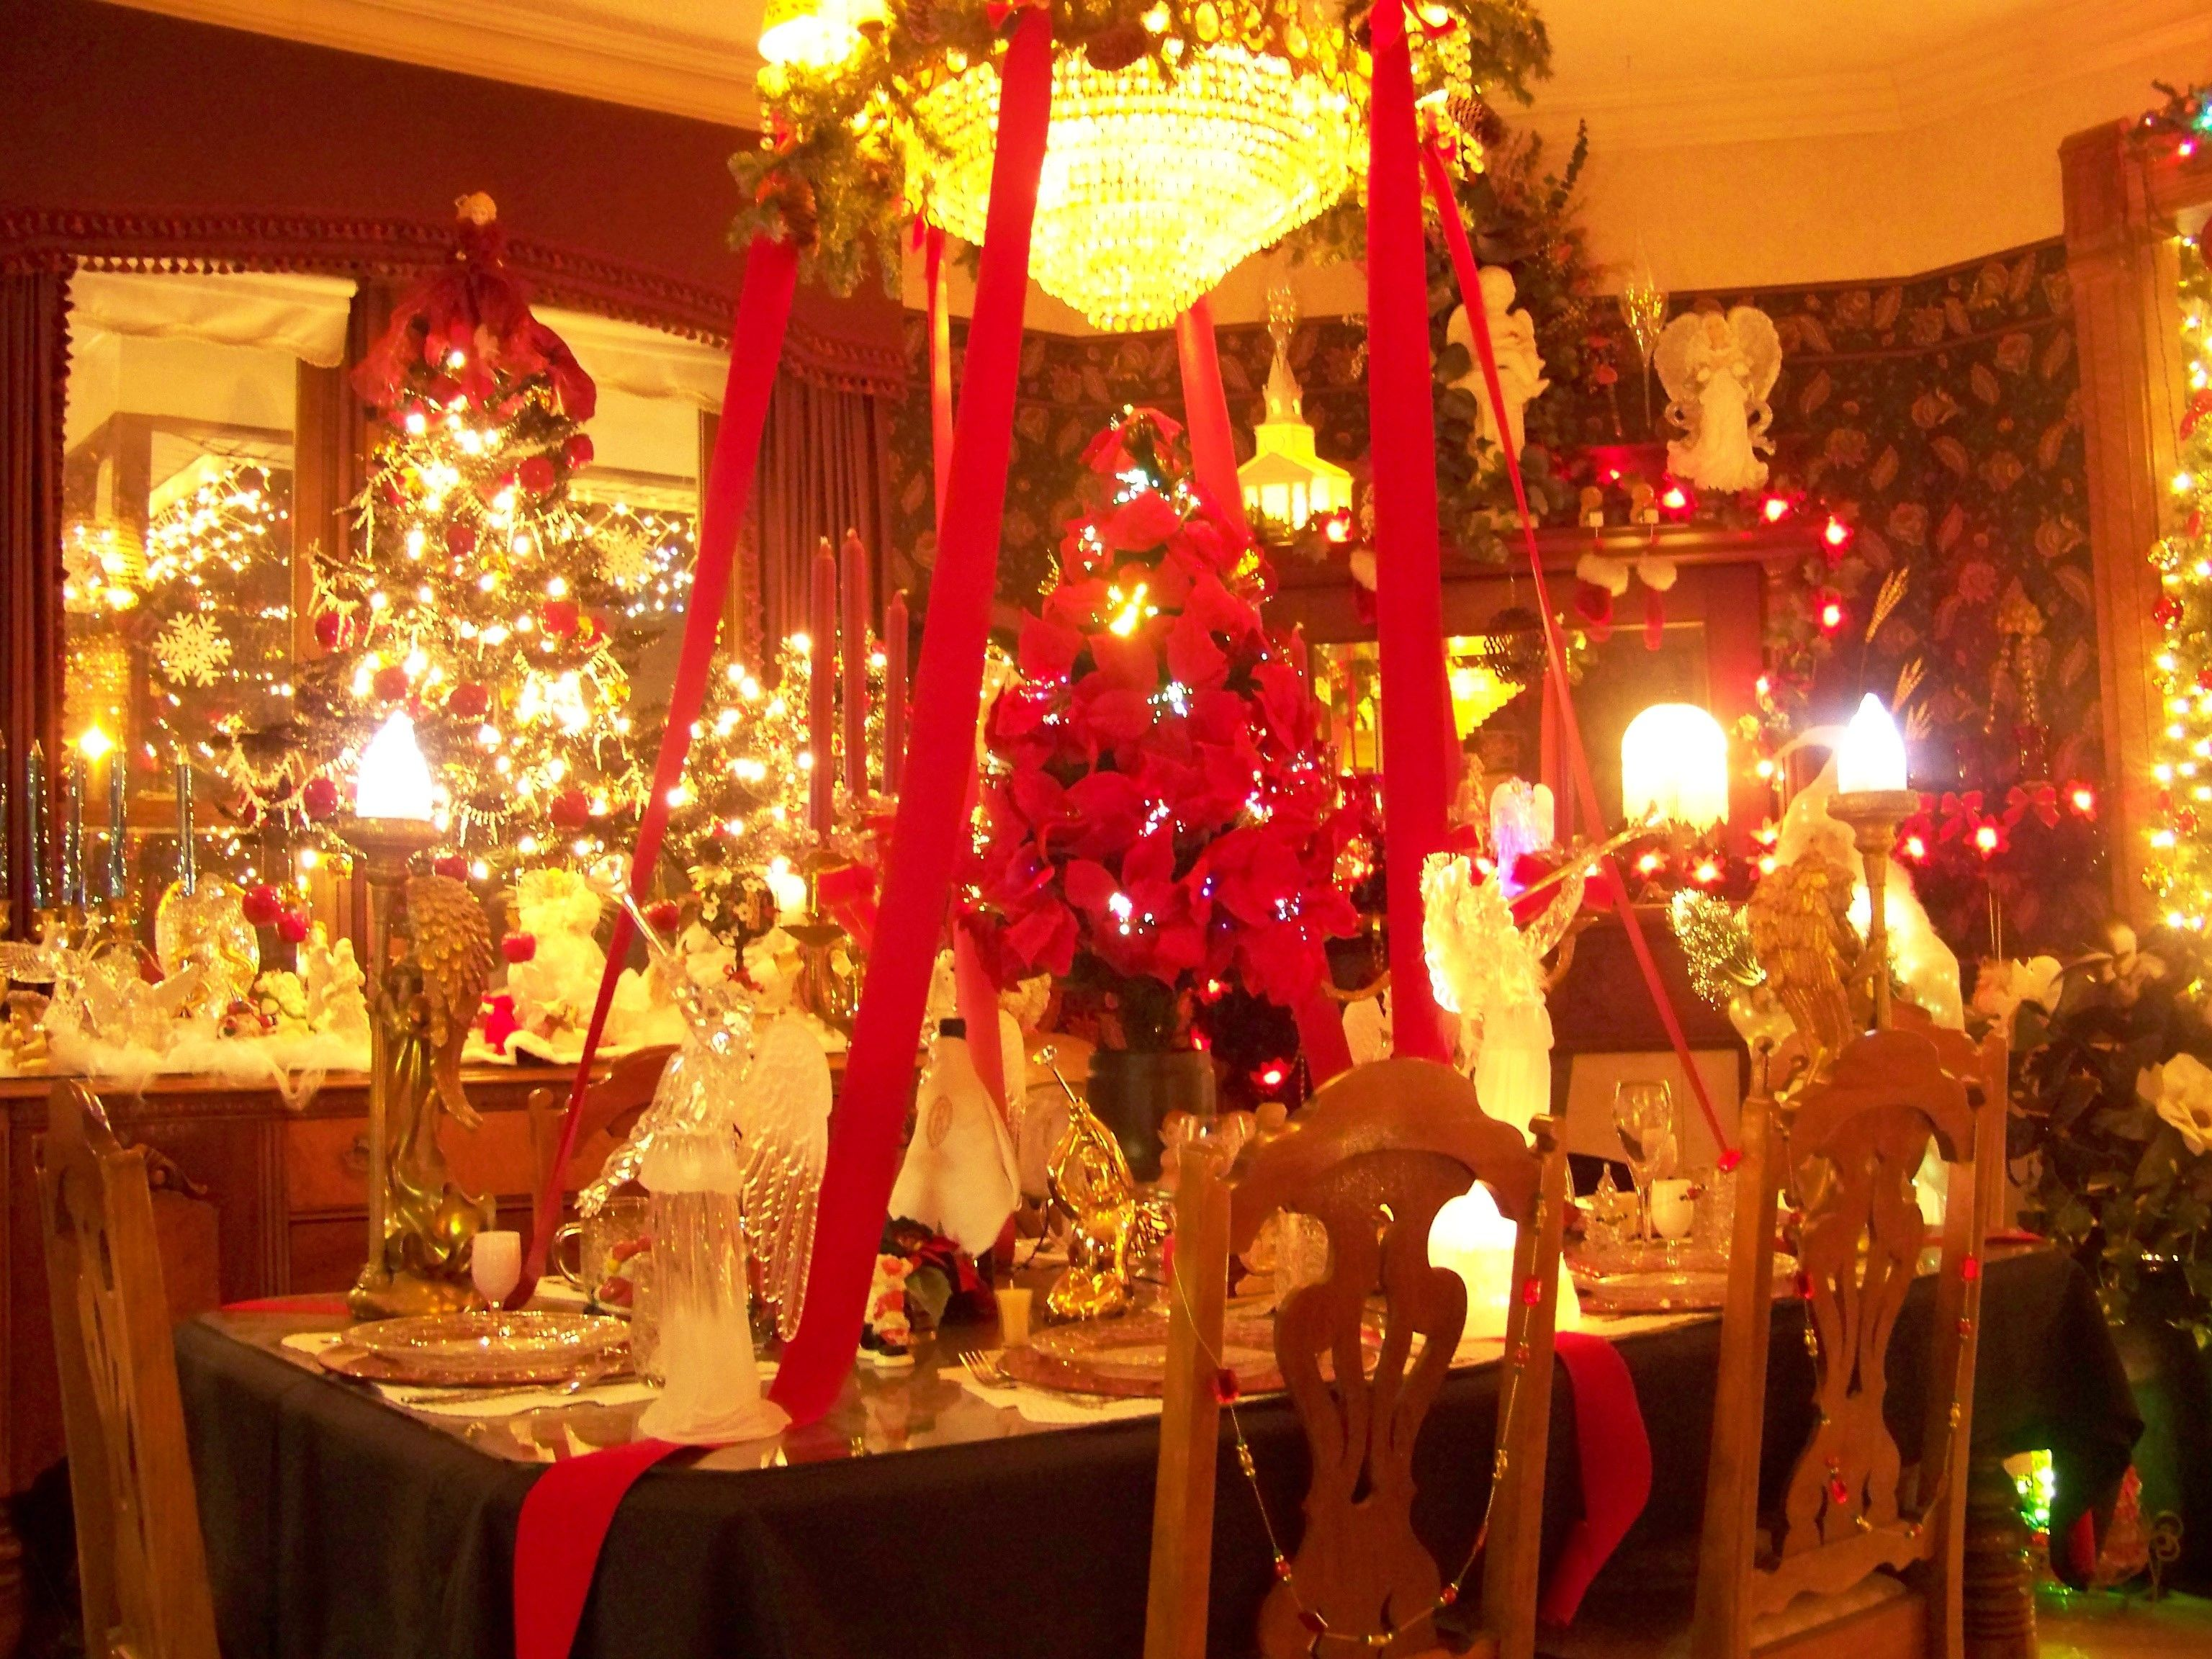 Christmas table decorations red and gold - Glamoruous Red Gold Christmas Dinner Table Decorations Feats All Gleamy Gold Table Wares Christmas Trees And